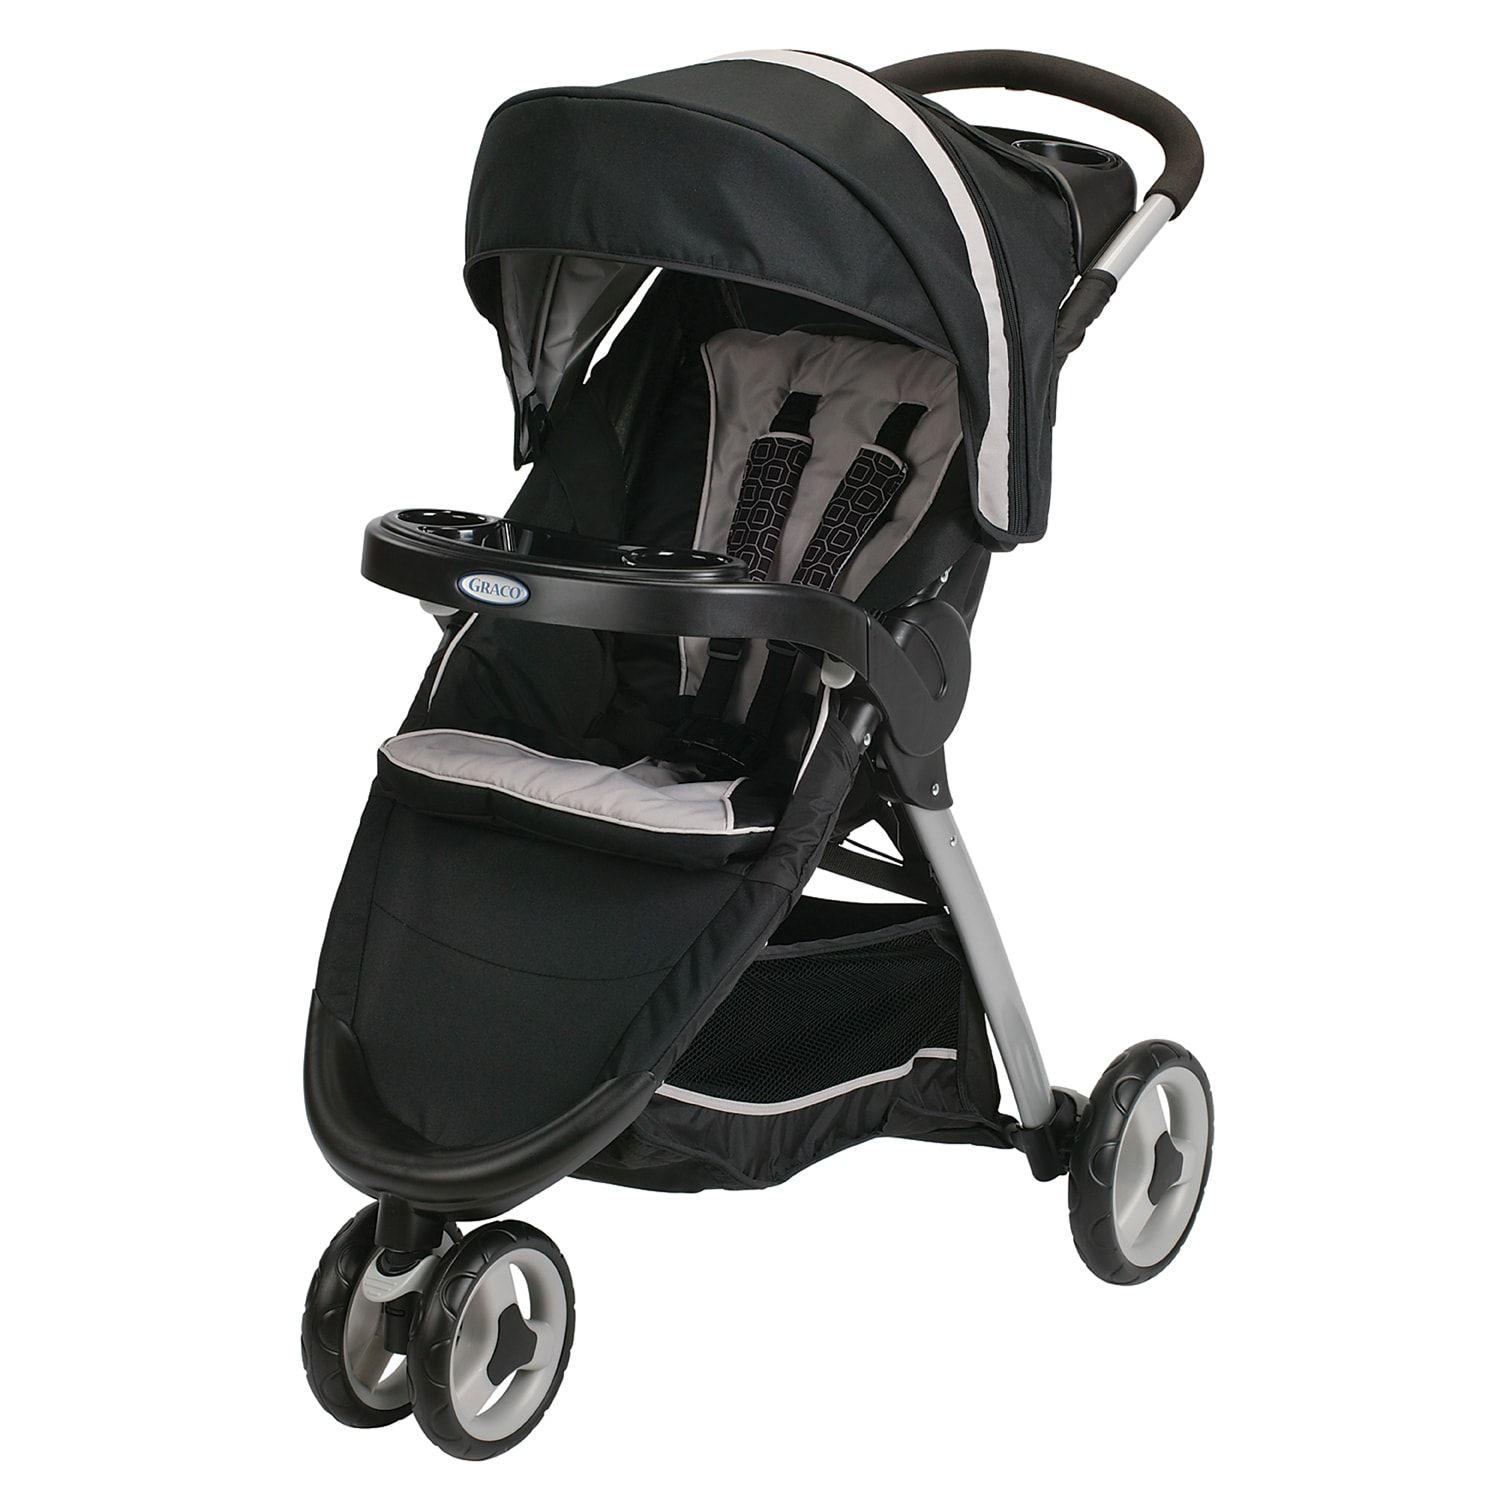 Graco FastAction Sport Travel System with SnugRide Click